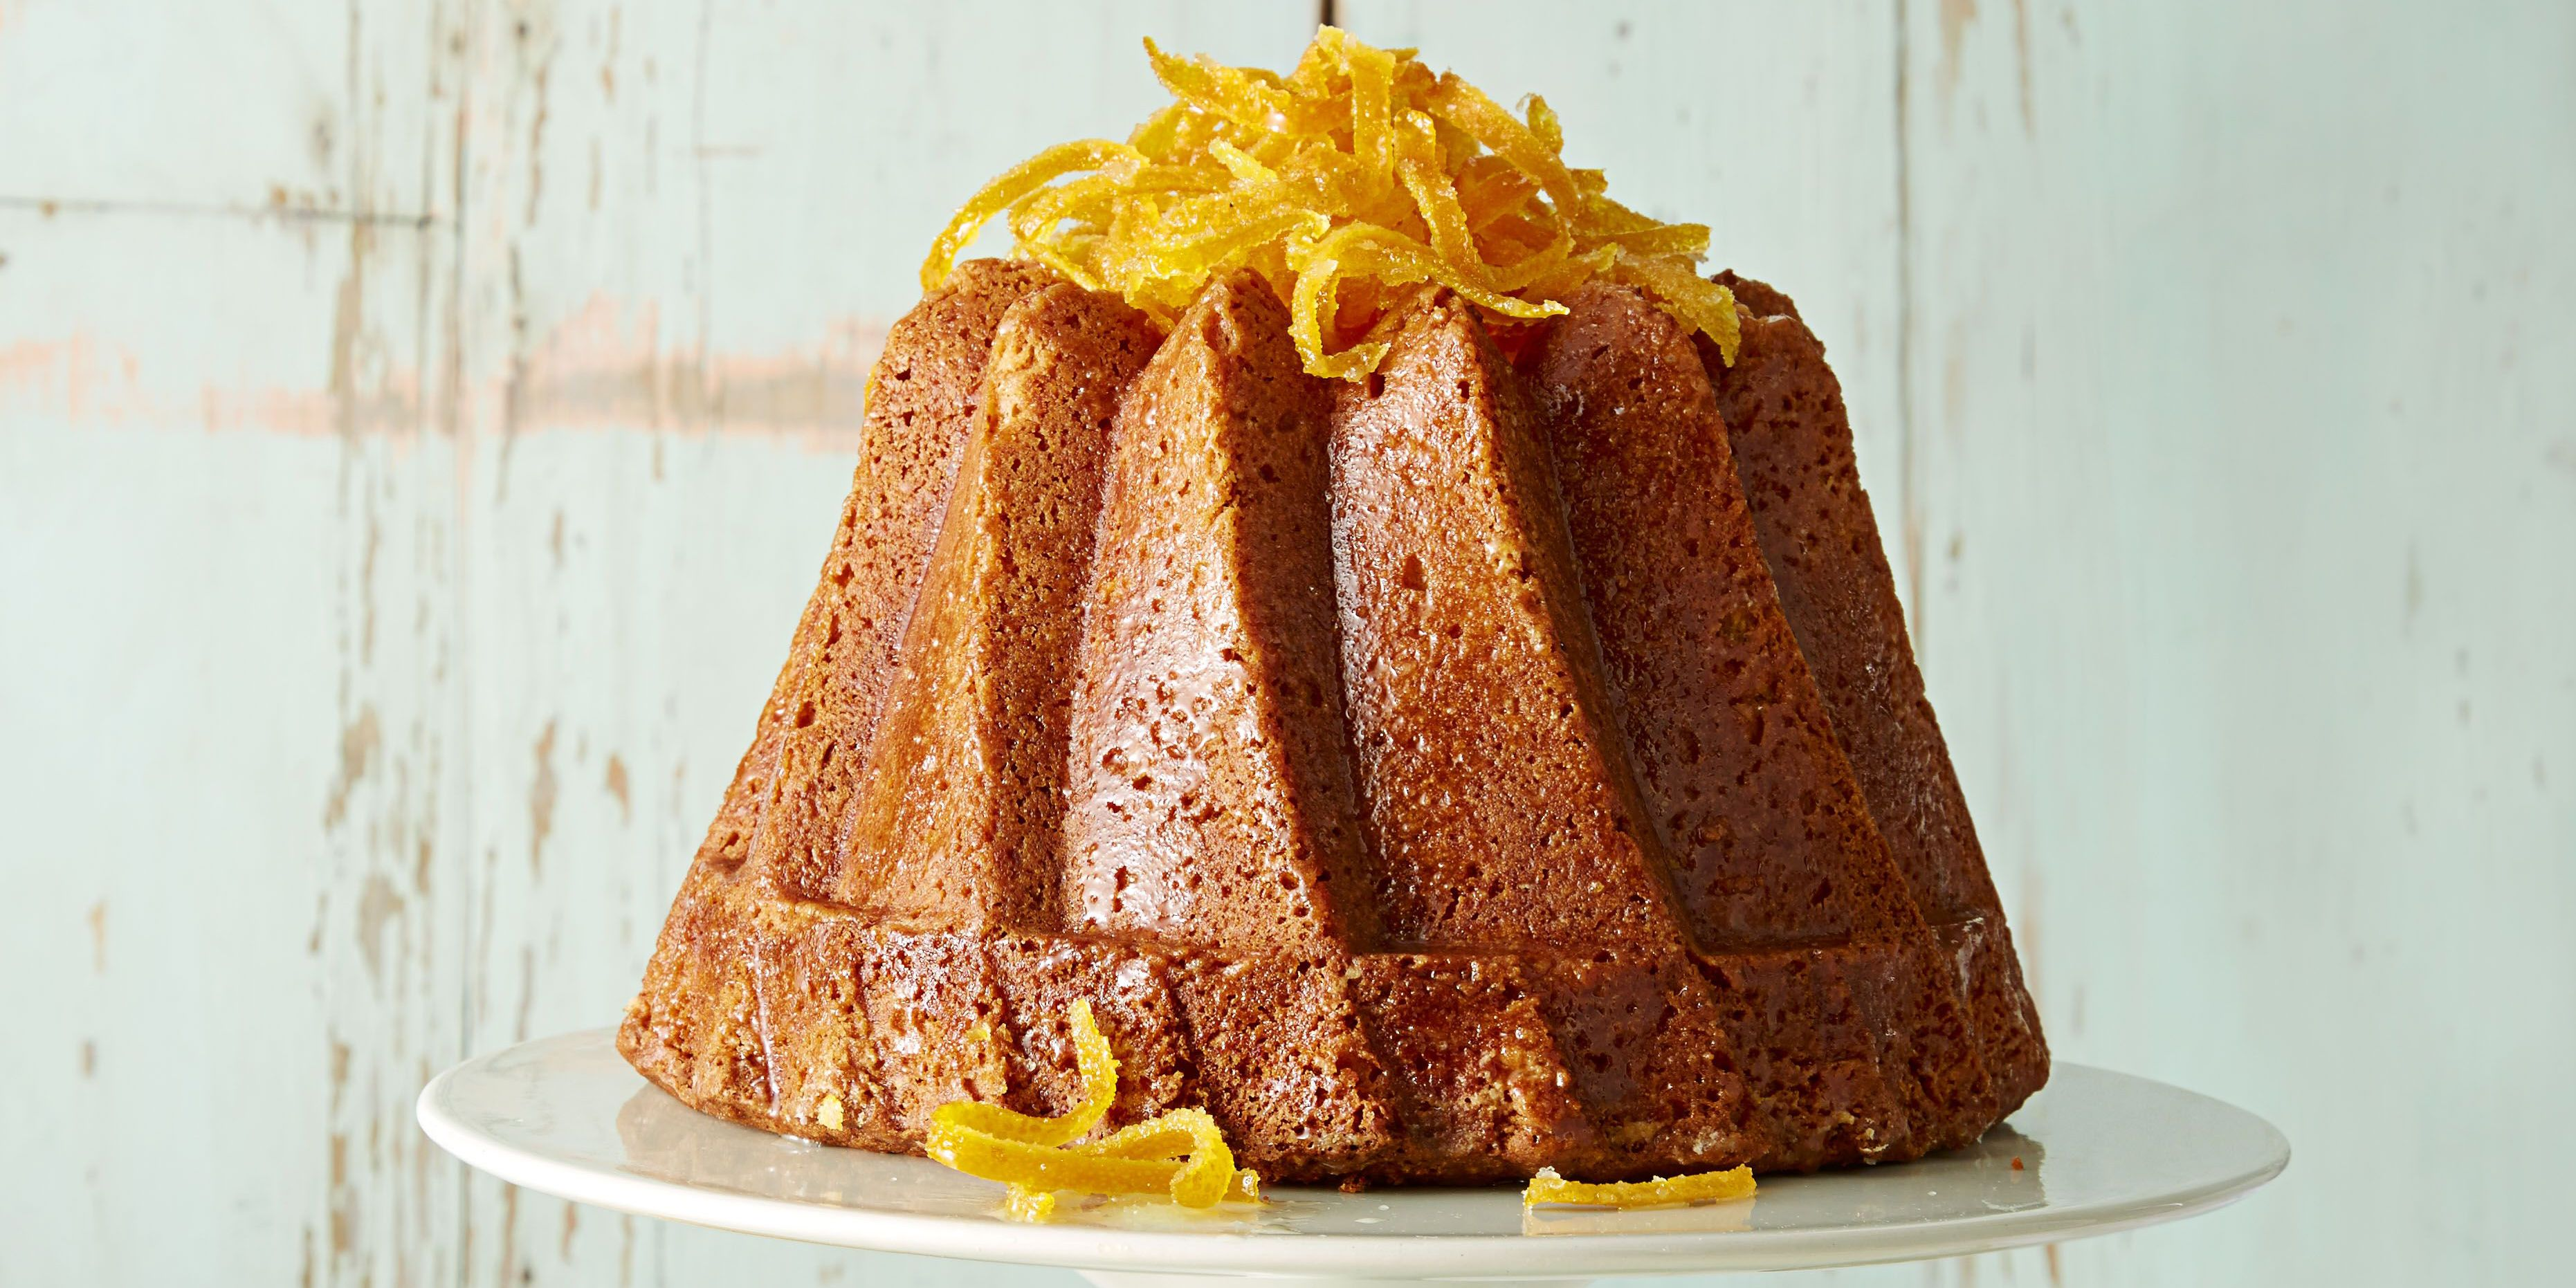 20 Cake Recipes That'll Wow Mom on Mother's Day